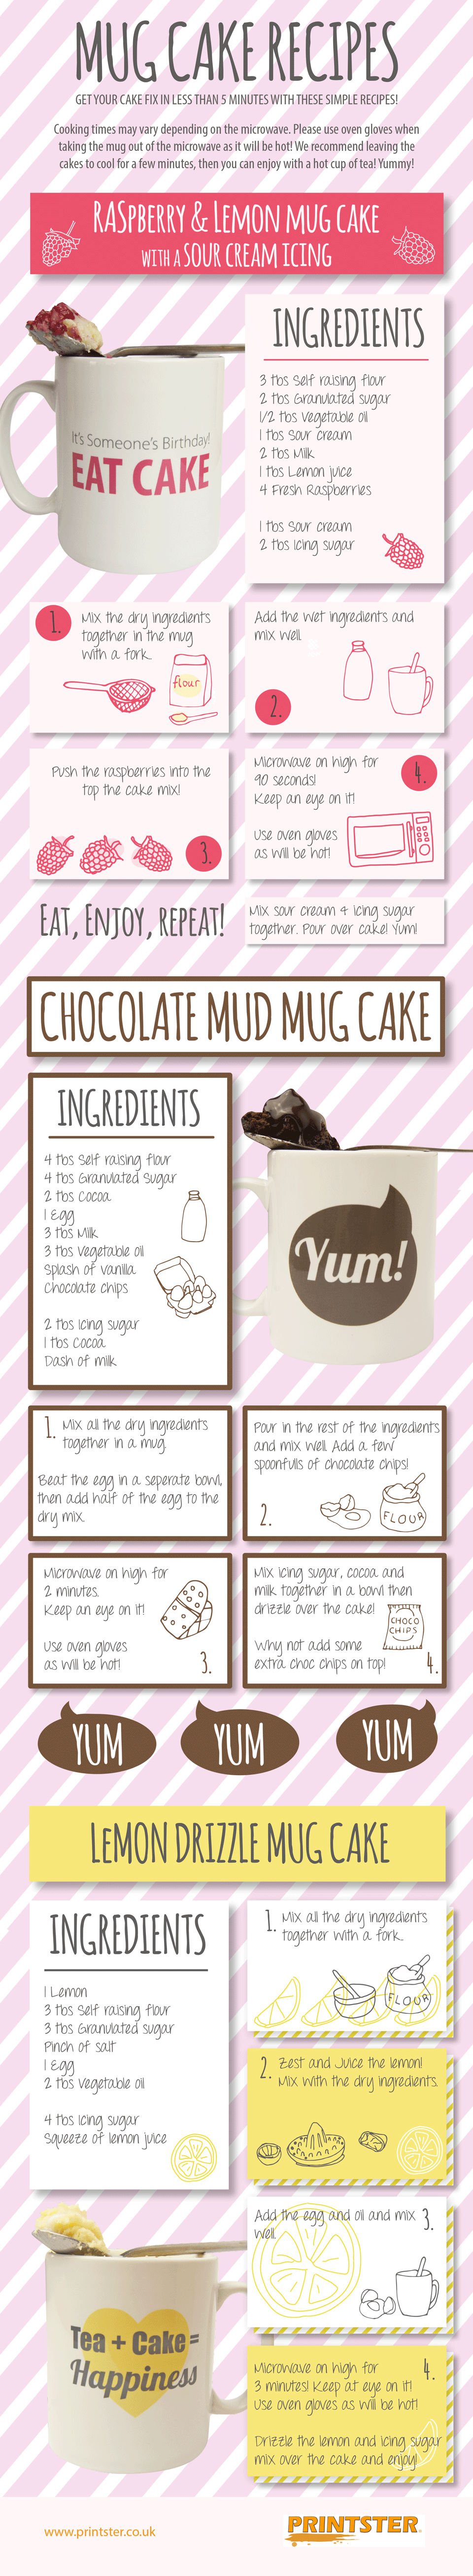 Cake-in-a-Mug: Sinfully Delicious Mug Cake Recipes - Infographic